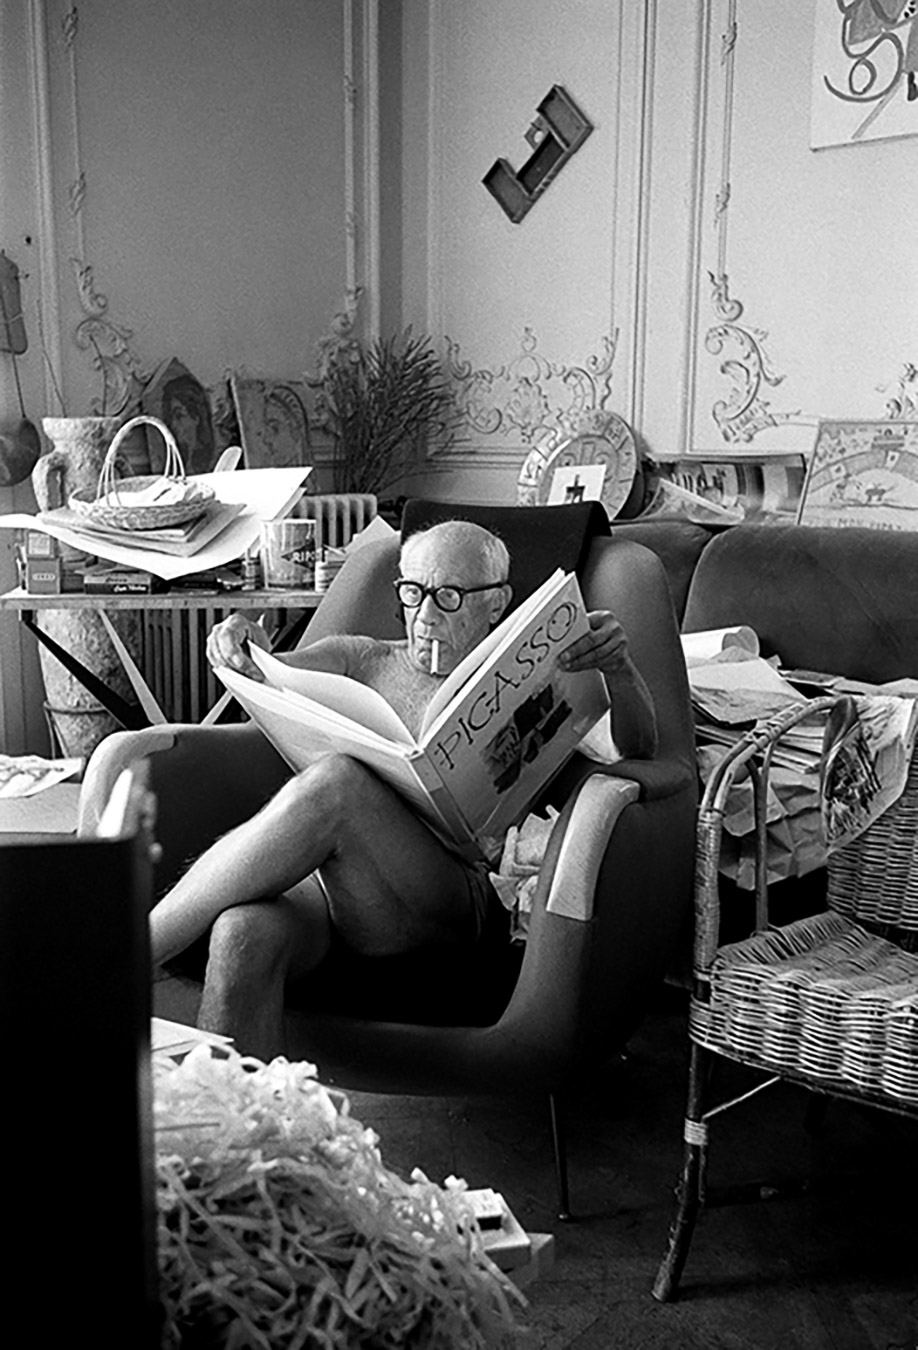 Picasso reading book on himself, Villa La Californie, Cannes 1961 Silver gelatin print 94x66cm